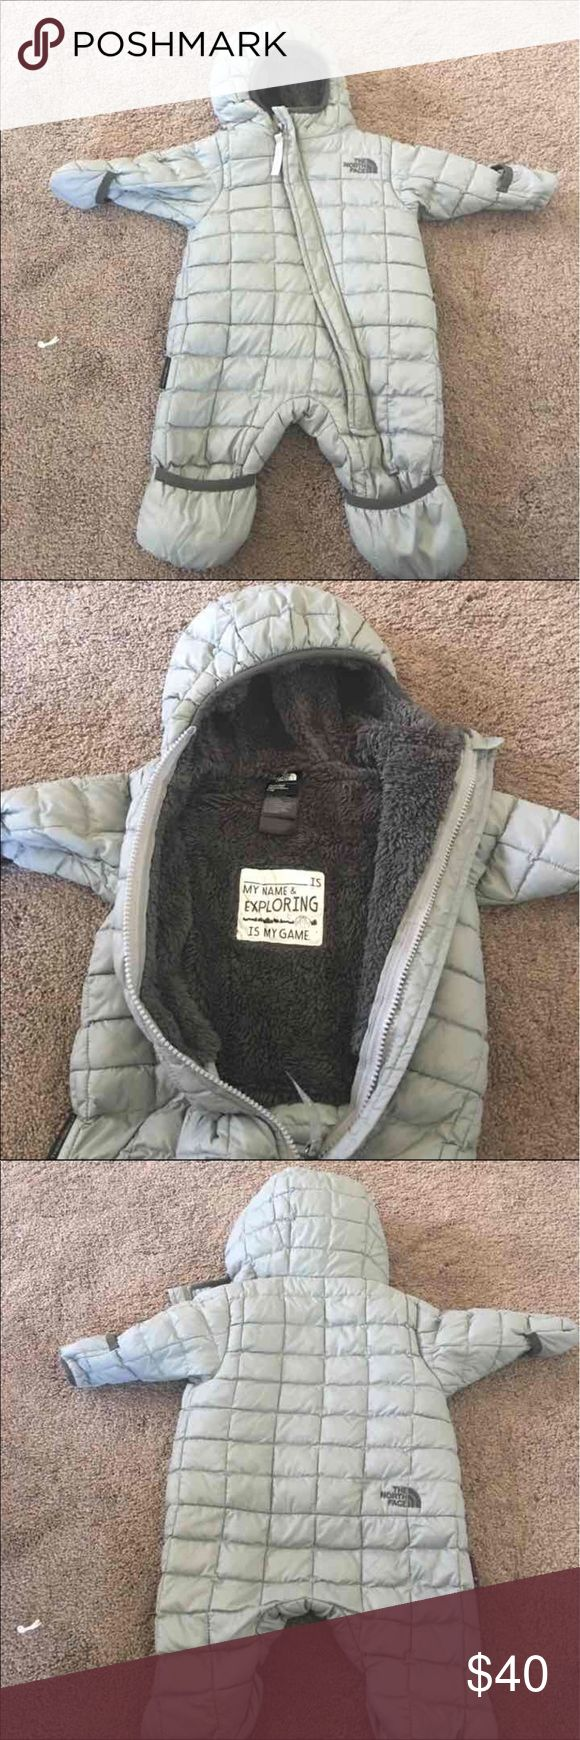 North Face Thermoball Infant Snow Suit Size 0-3 months. North Face Jackets & Coats Puffers